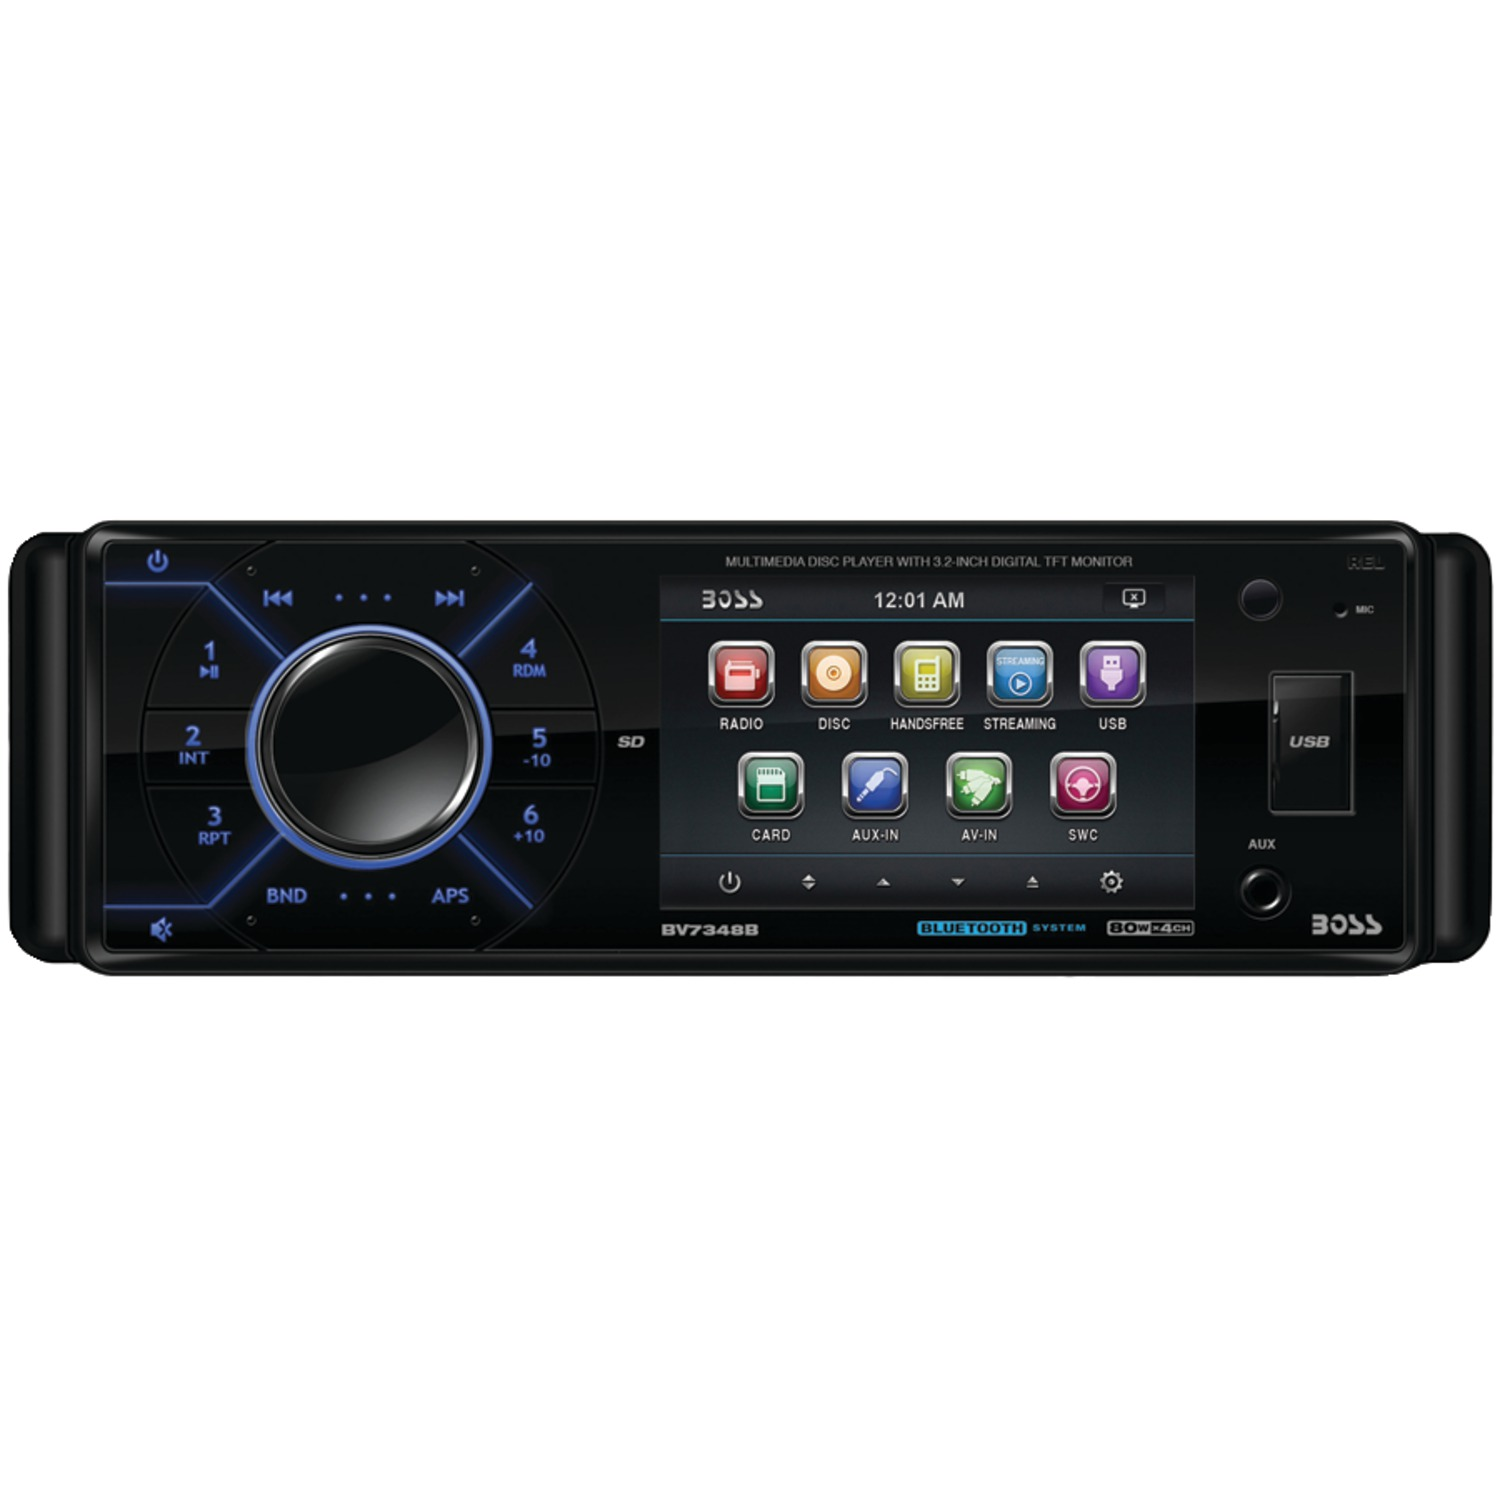 Boss Bv9538b Double Din Bluetooth Dvd Car Stereo Receiver: 3.2 Inch. Single-DIN In-Dash DVD